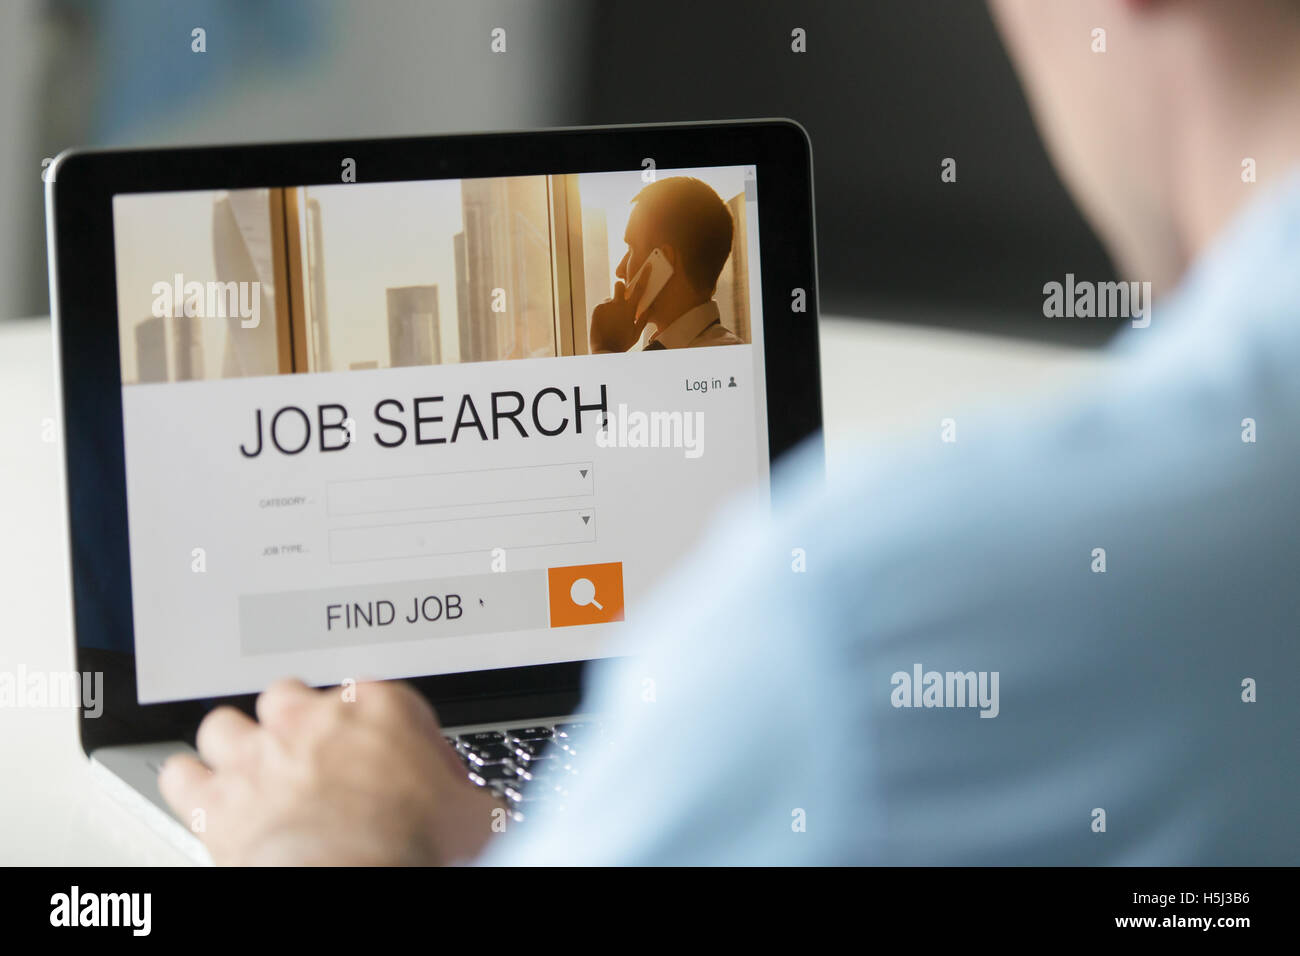 Monitor view over a male shoulder, job search title - Stock Image